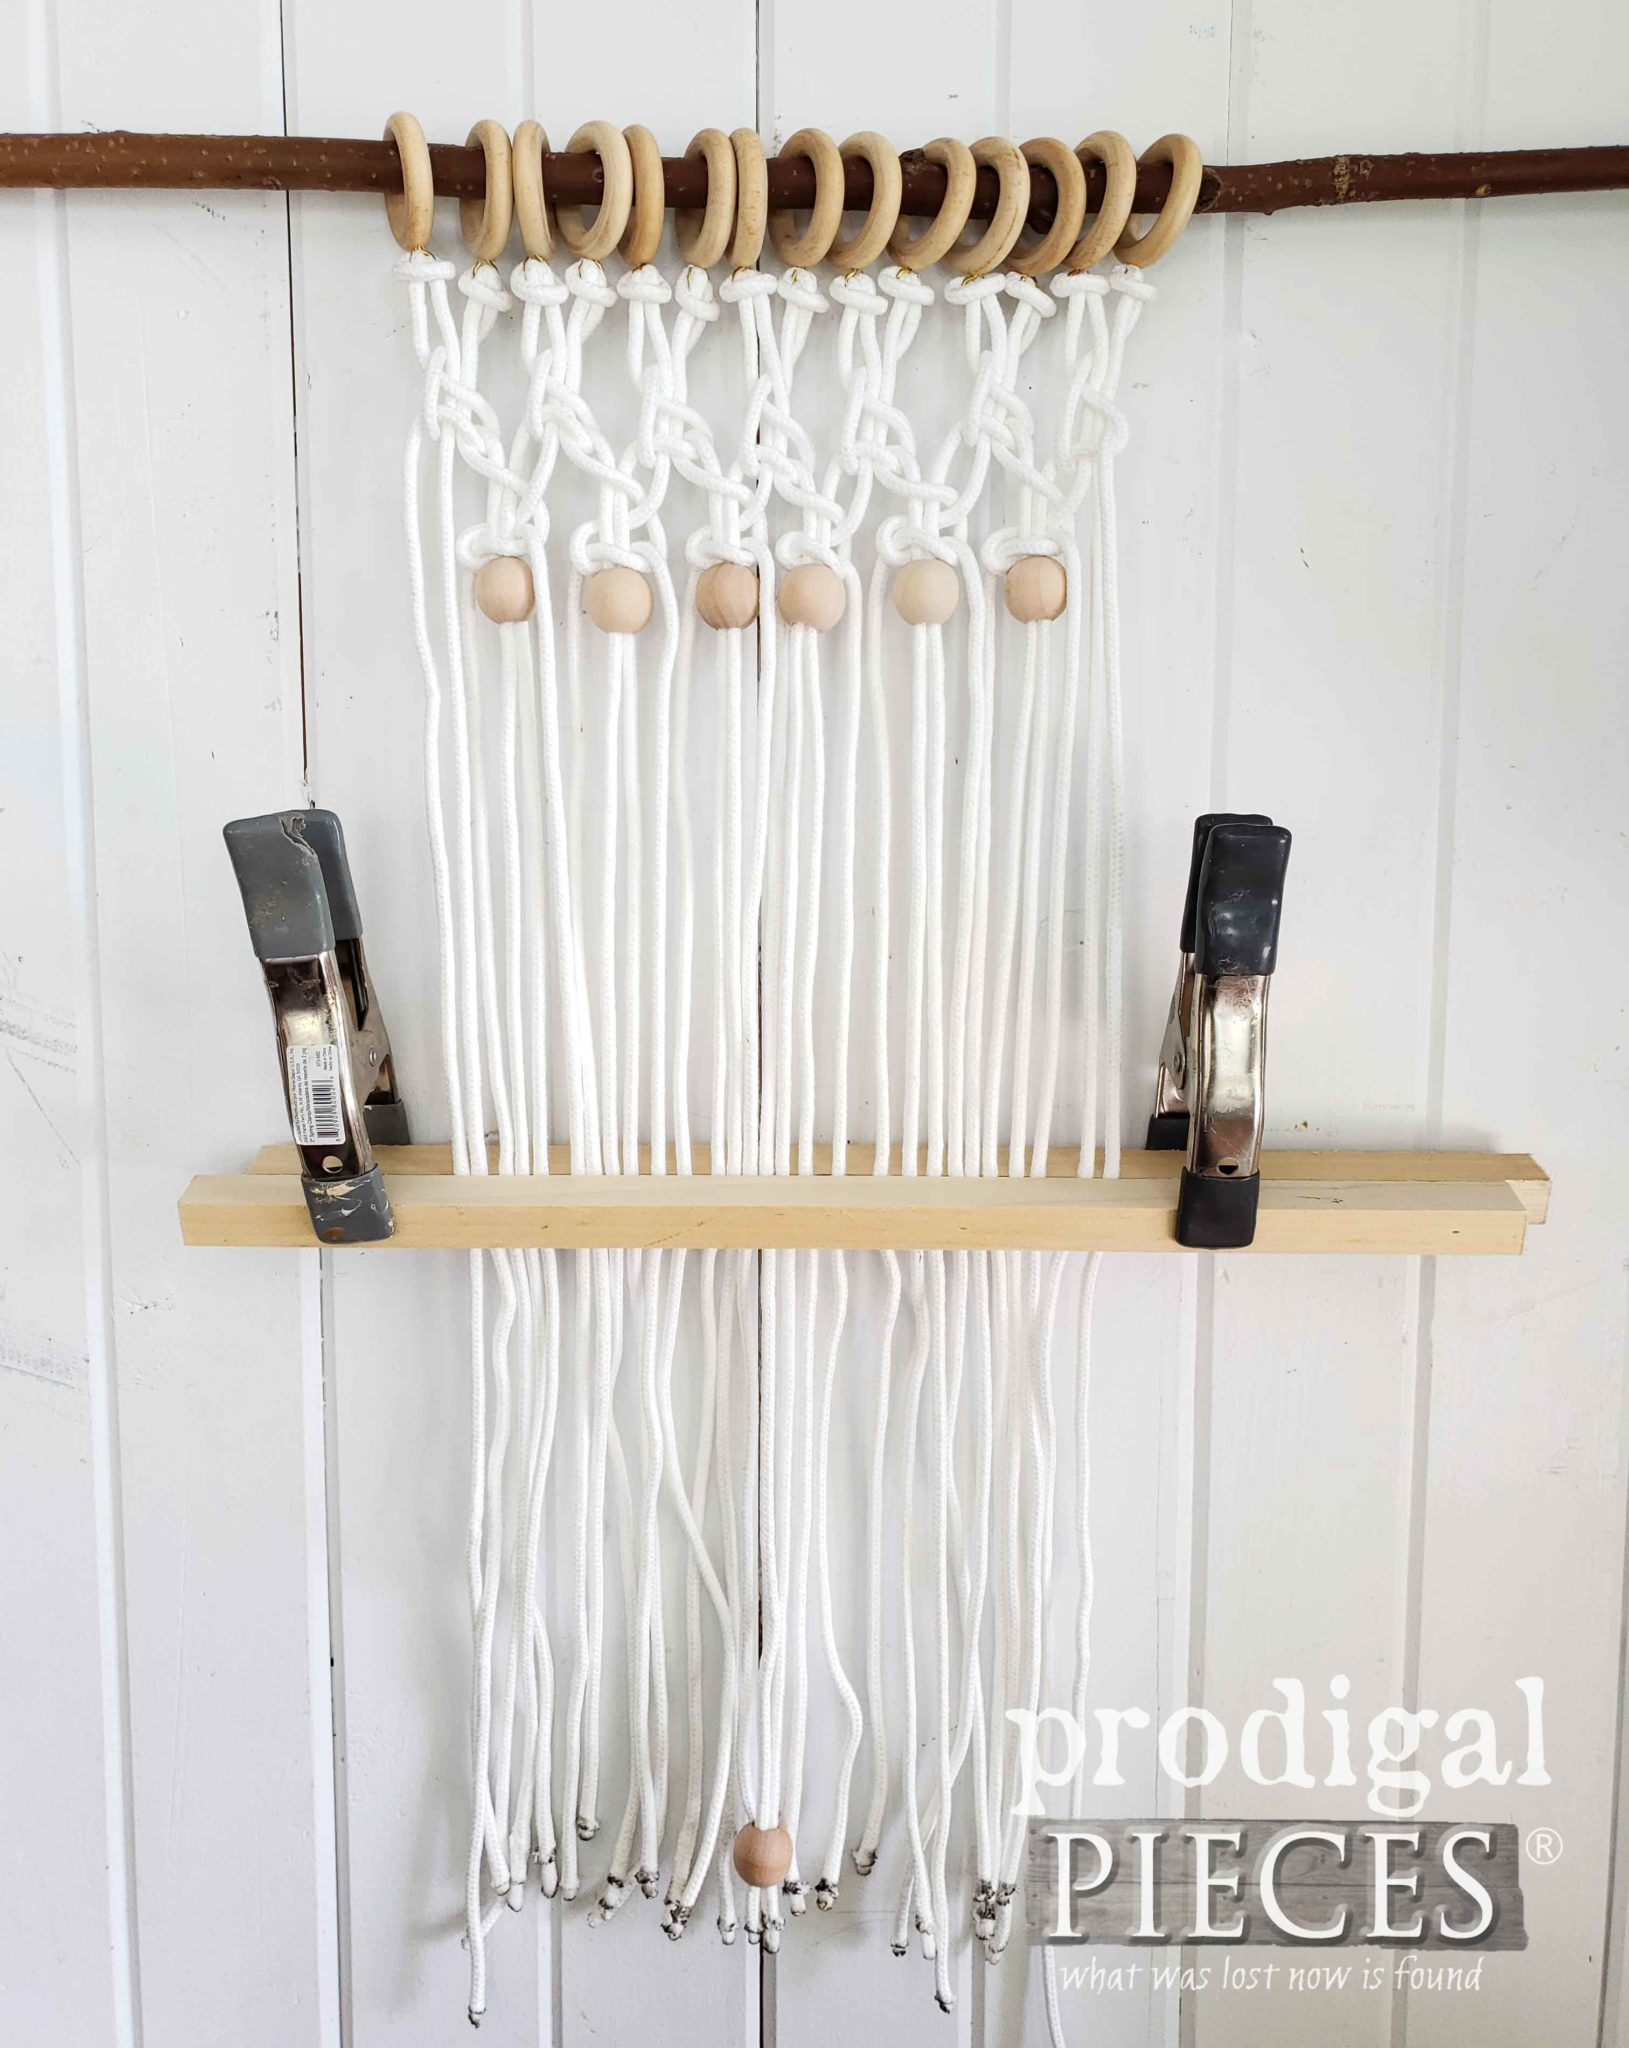 How to Cut Macrame Wall Art Evenly by Prodigal Pieces | prodigalpieces.com